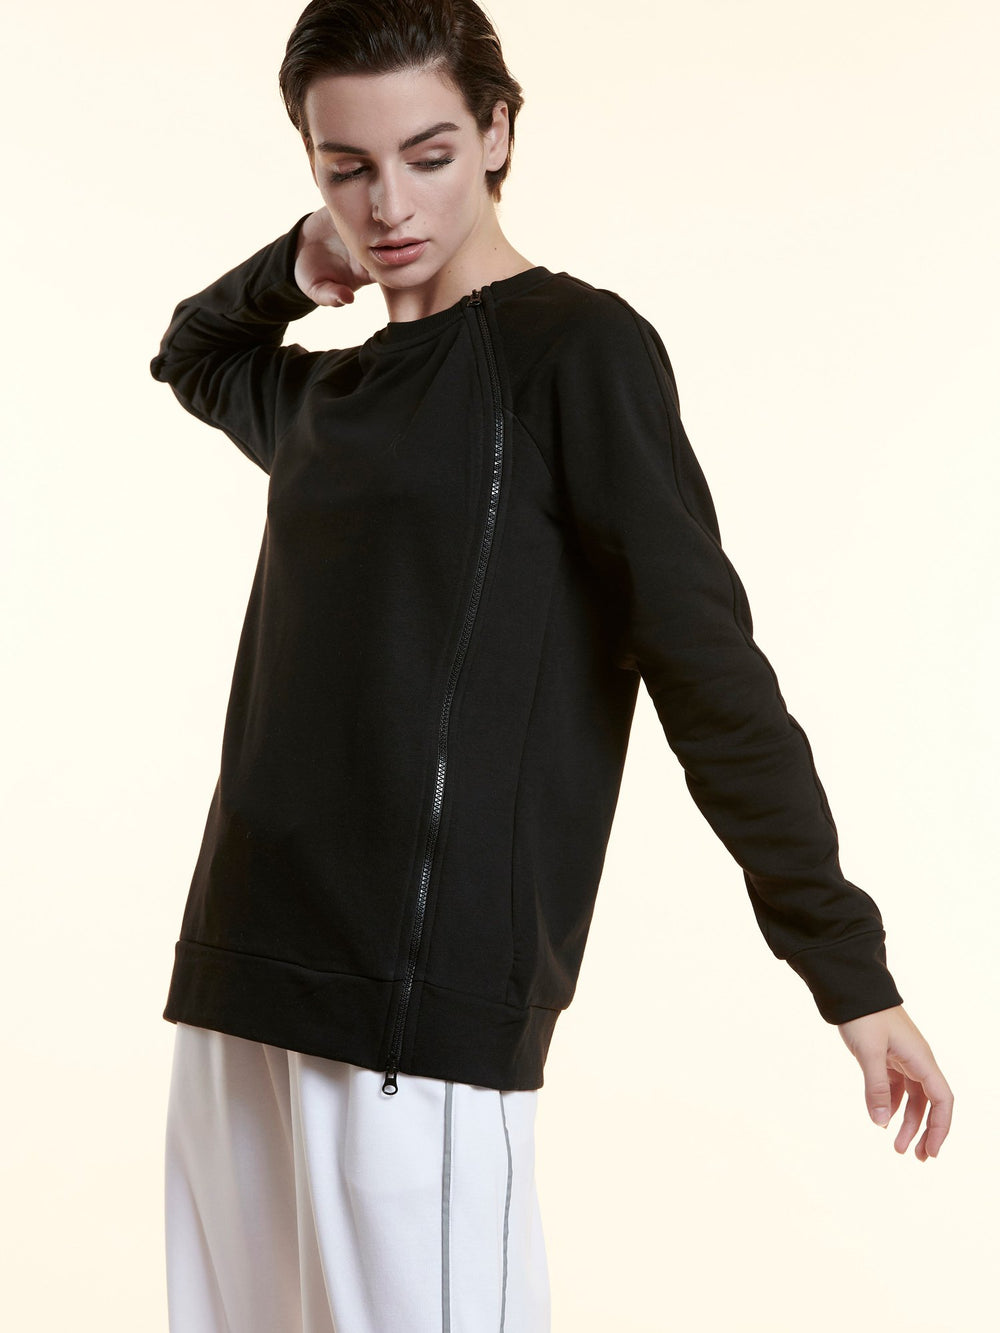 BAYA - Sporty Zipper Sweater - Black BY0034-BLK-OS-F